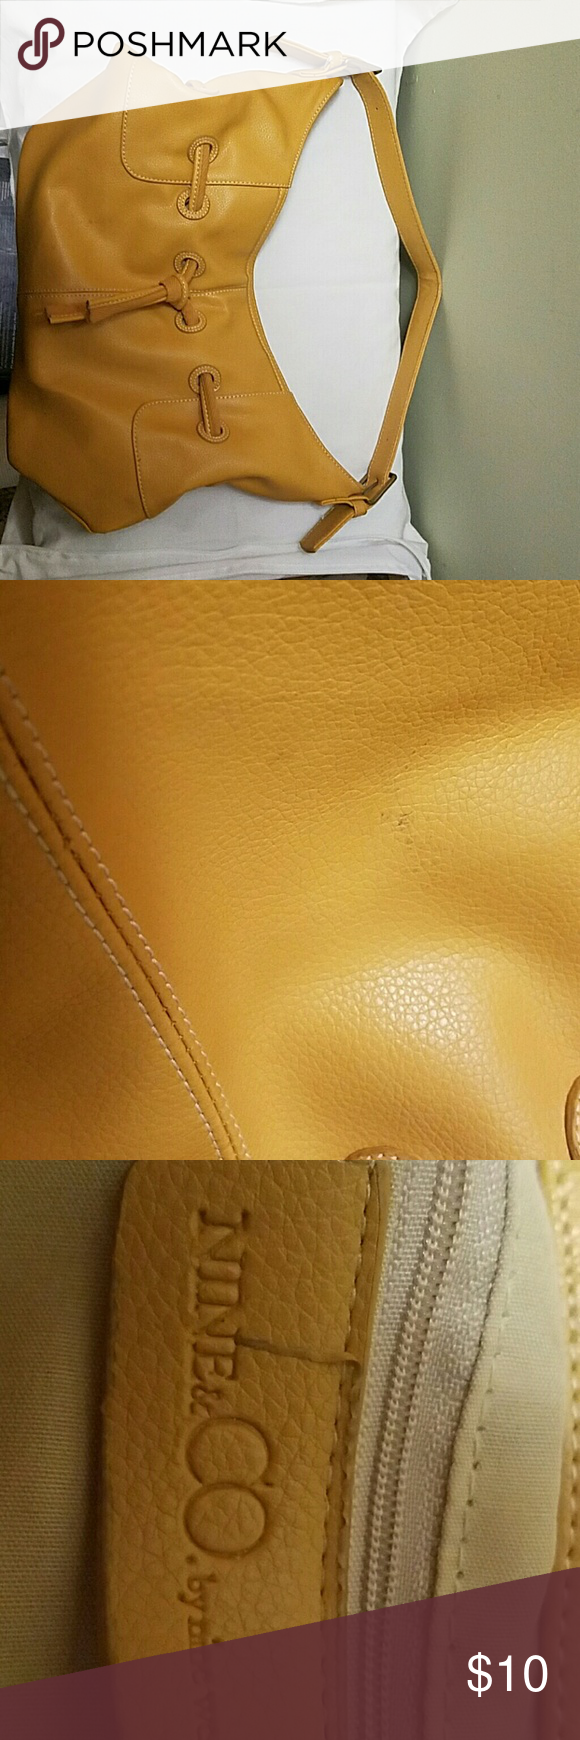 Medium-sized mustard color handbag Gently used, minor smudge that is shown in picture. On the larger size of medium Bags Shoulder Bags